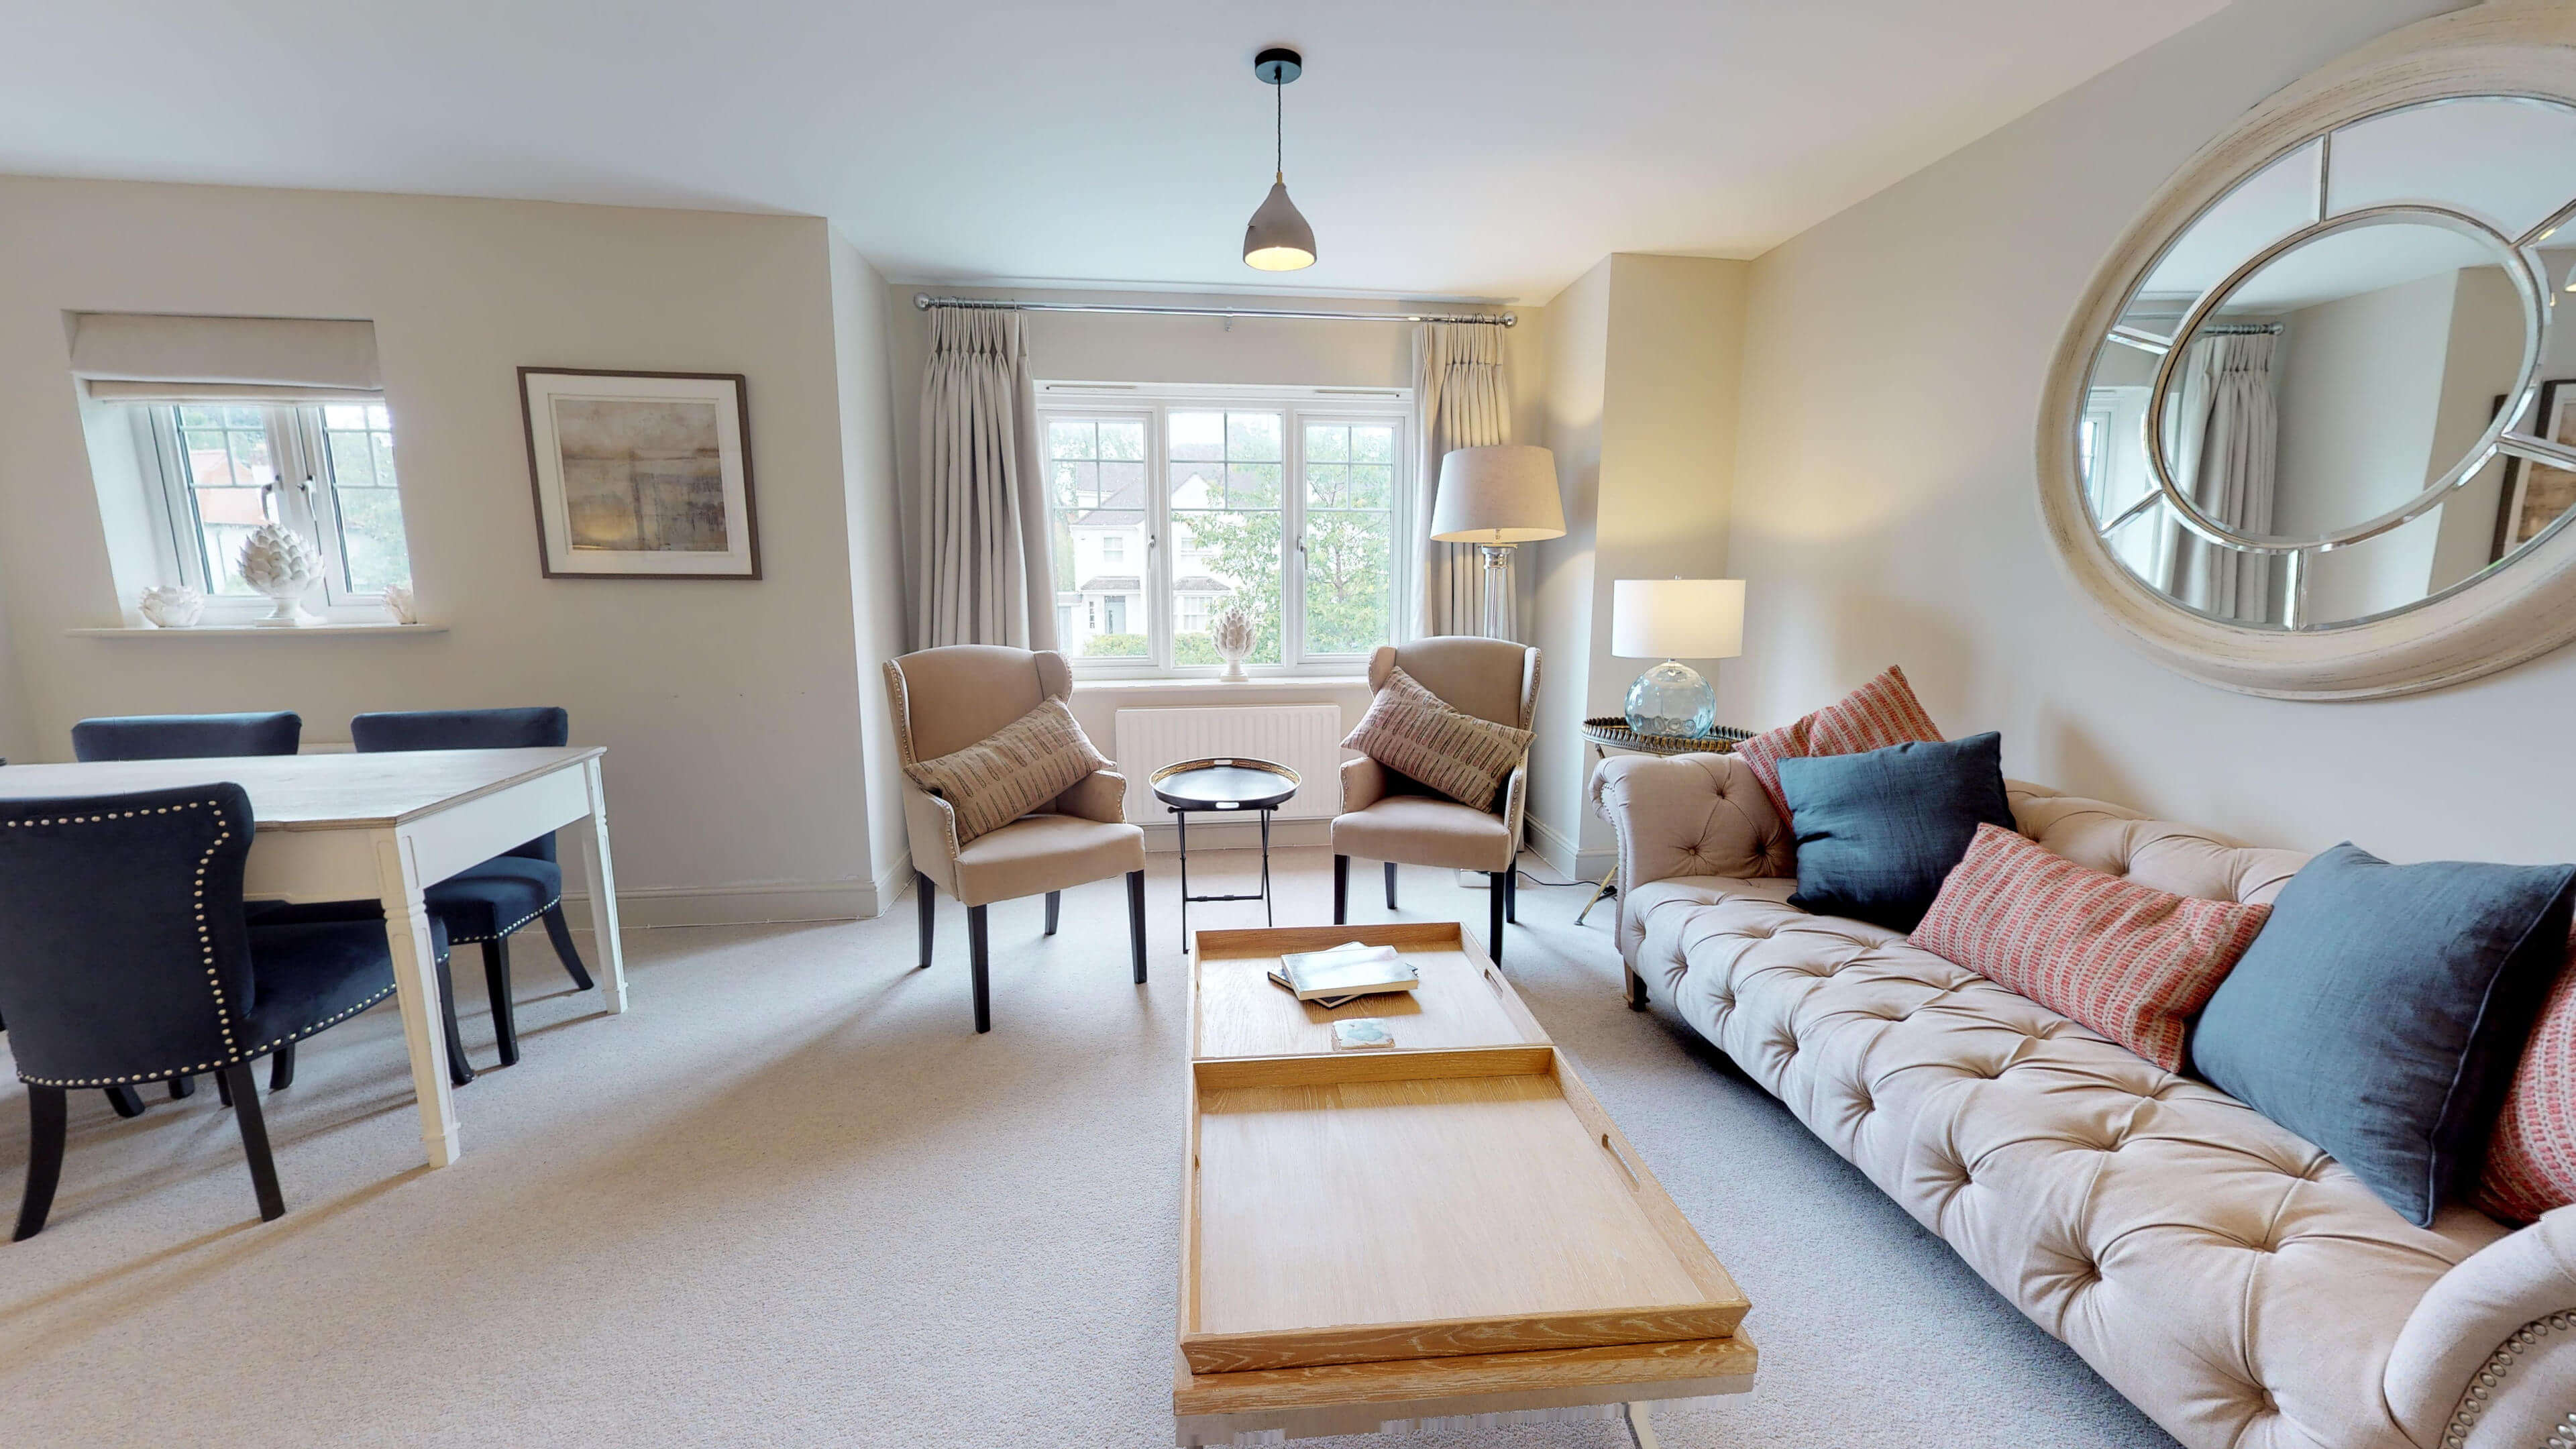 Oxford Serviced Apartments Hensington Suite Living Room Front View